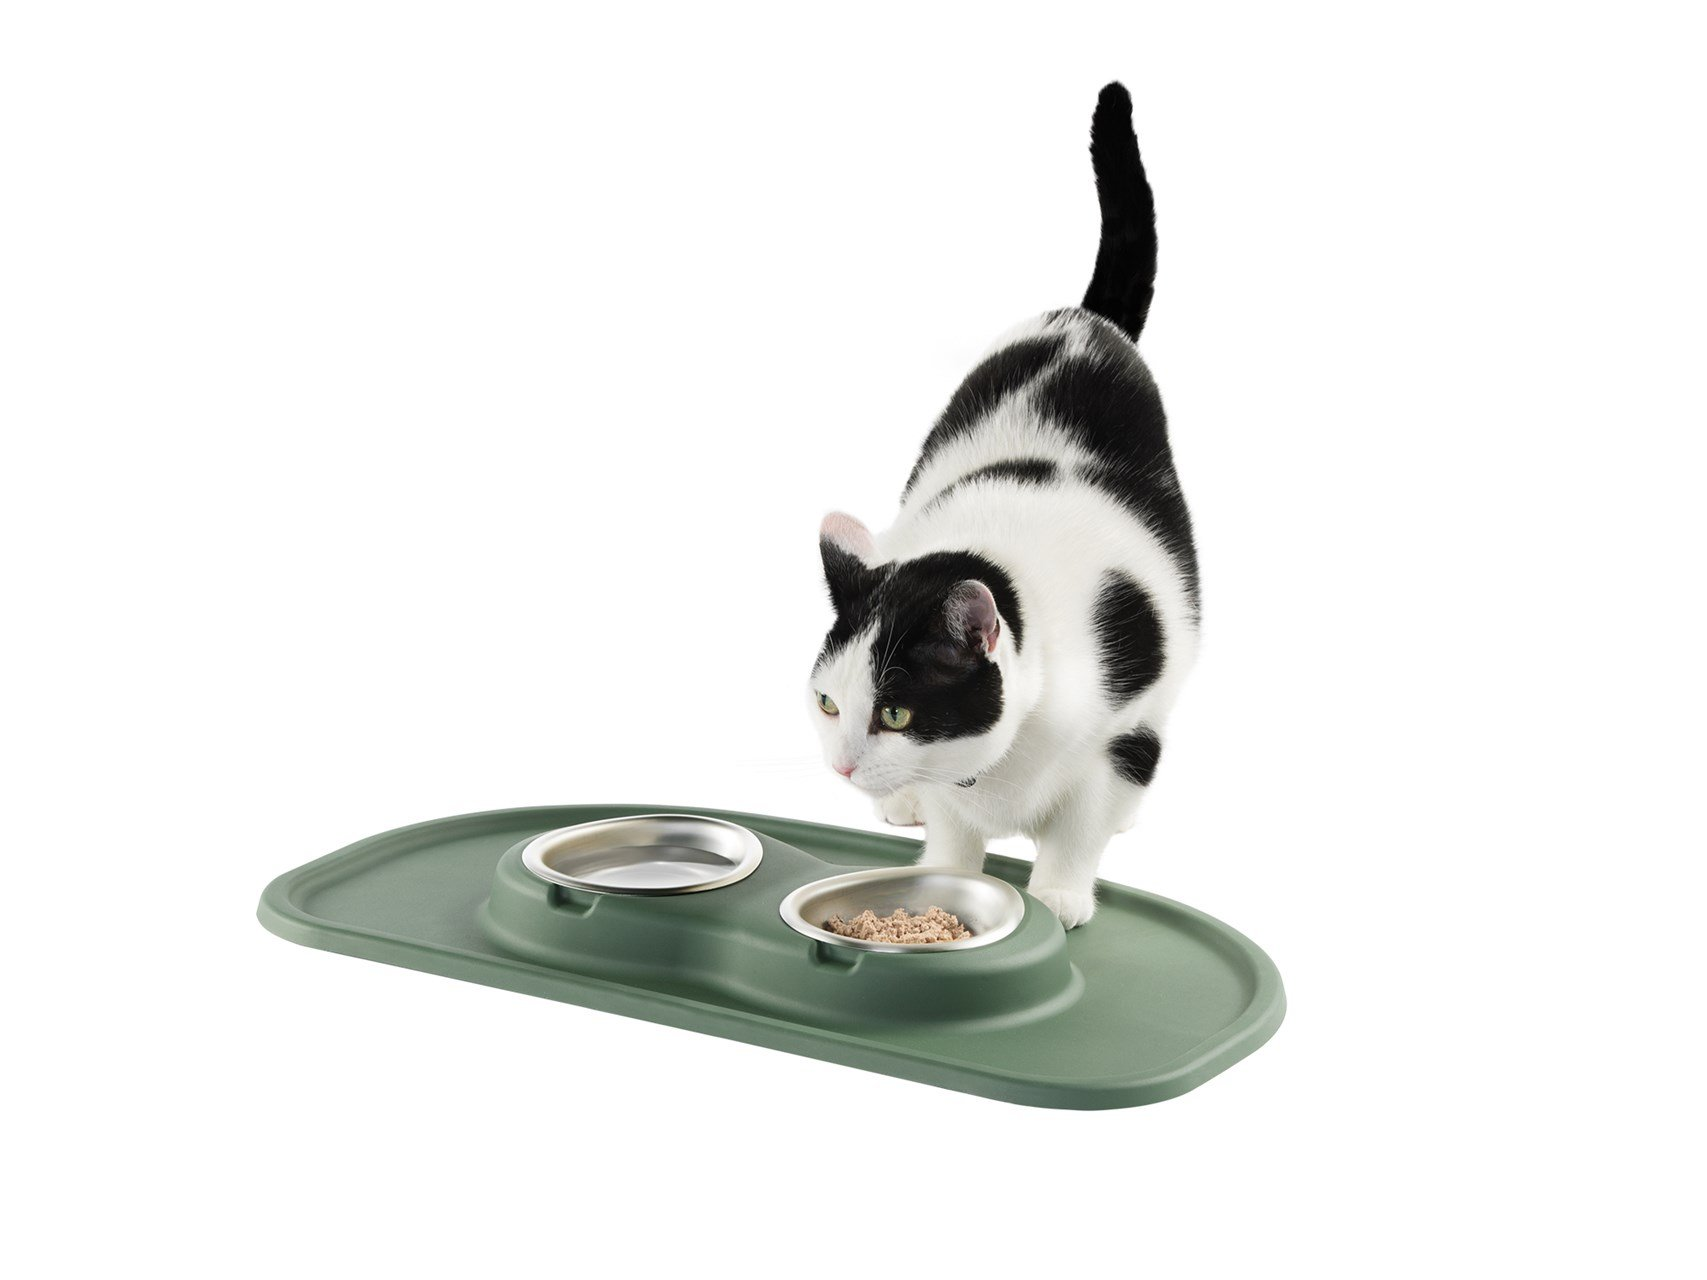 Cat eating from a Hunter Green PetComfort Feeding System - small.